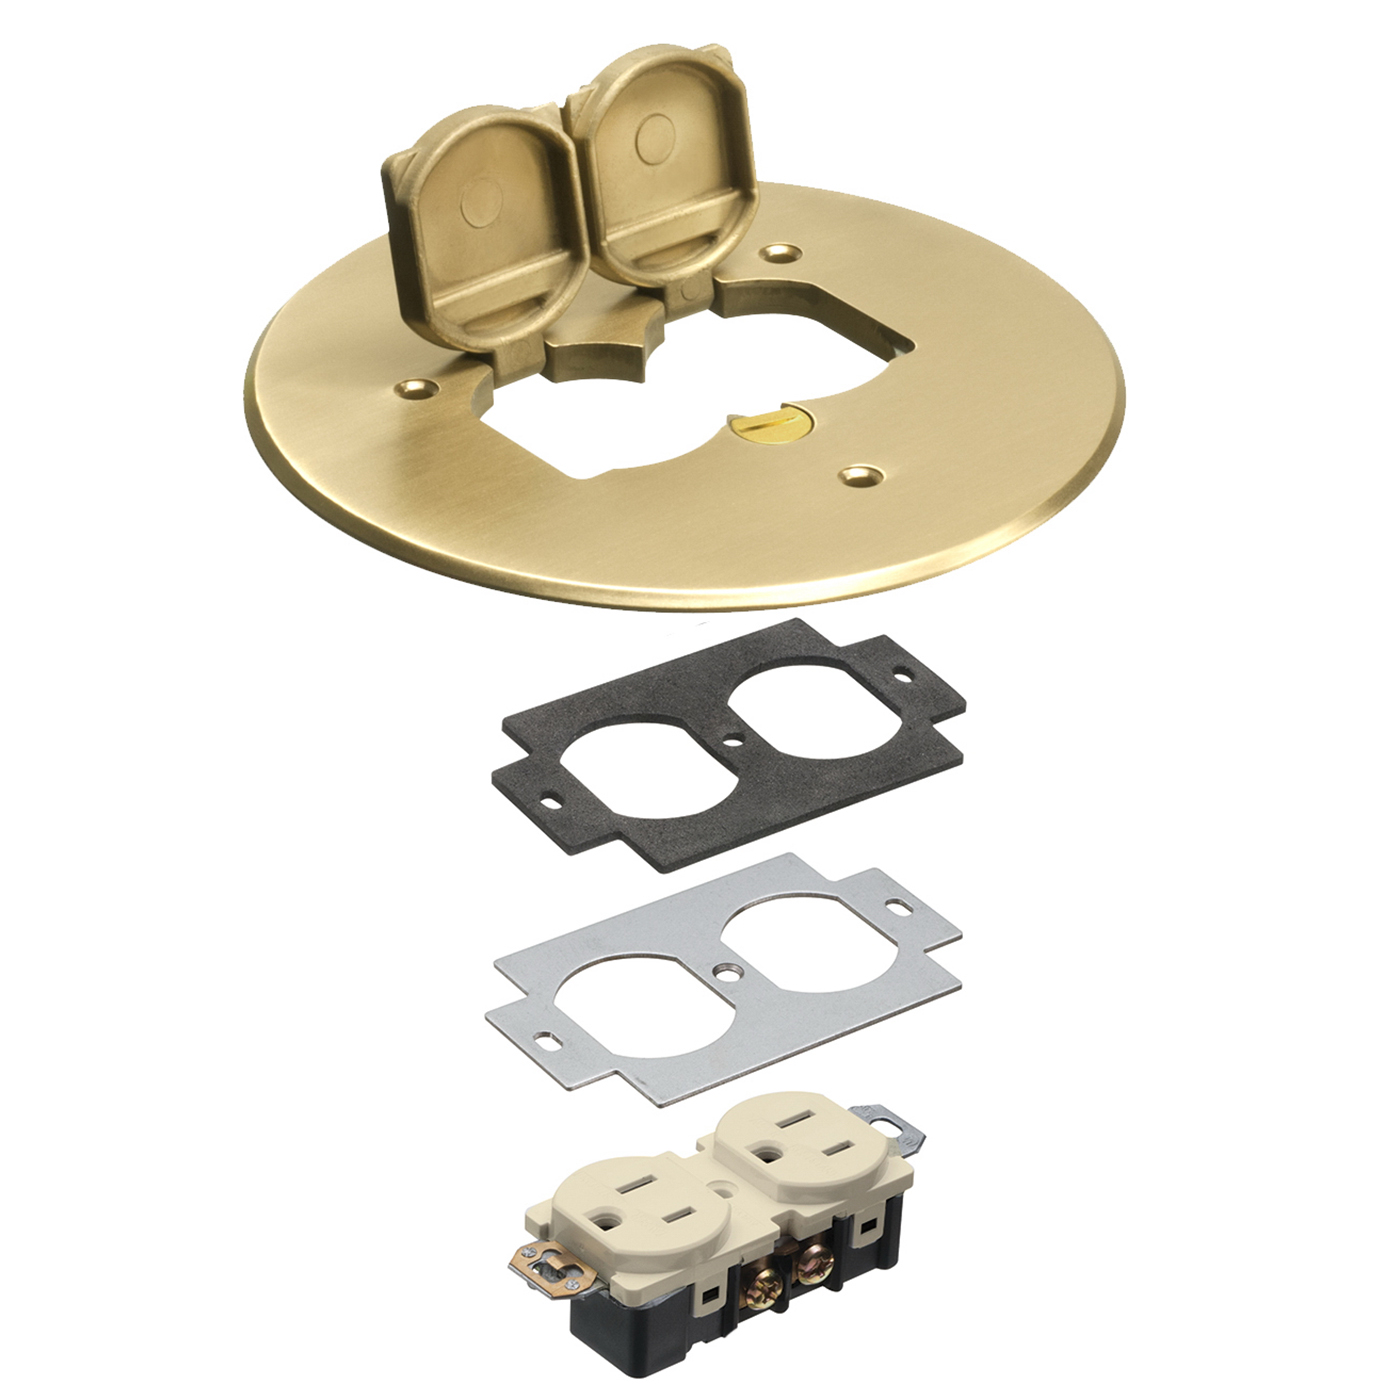 Arlington Flb6230mb Cover Kit Brass Home Goods